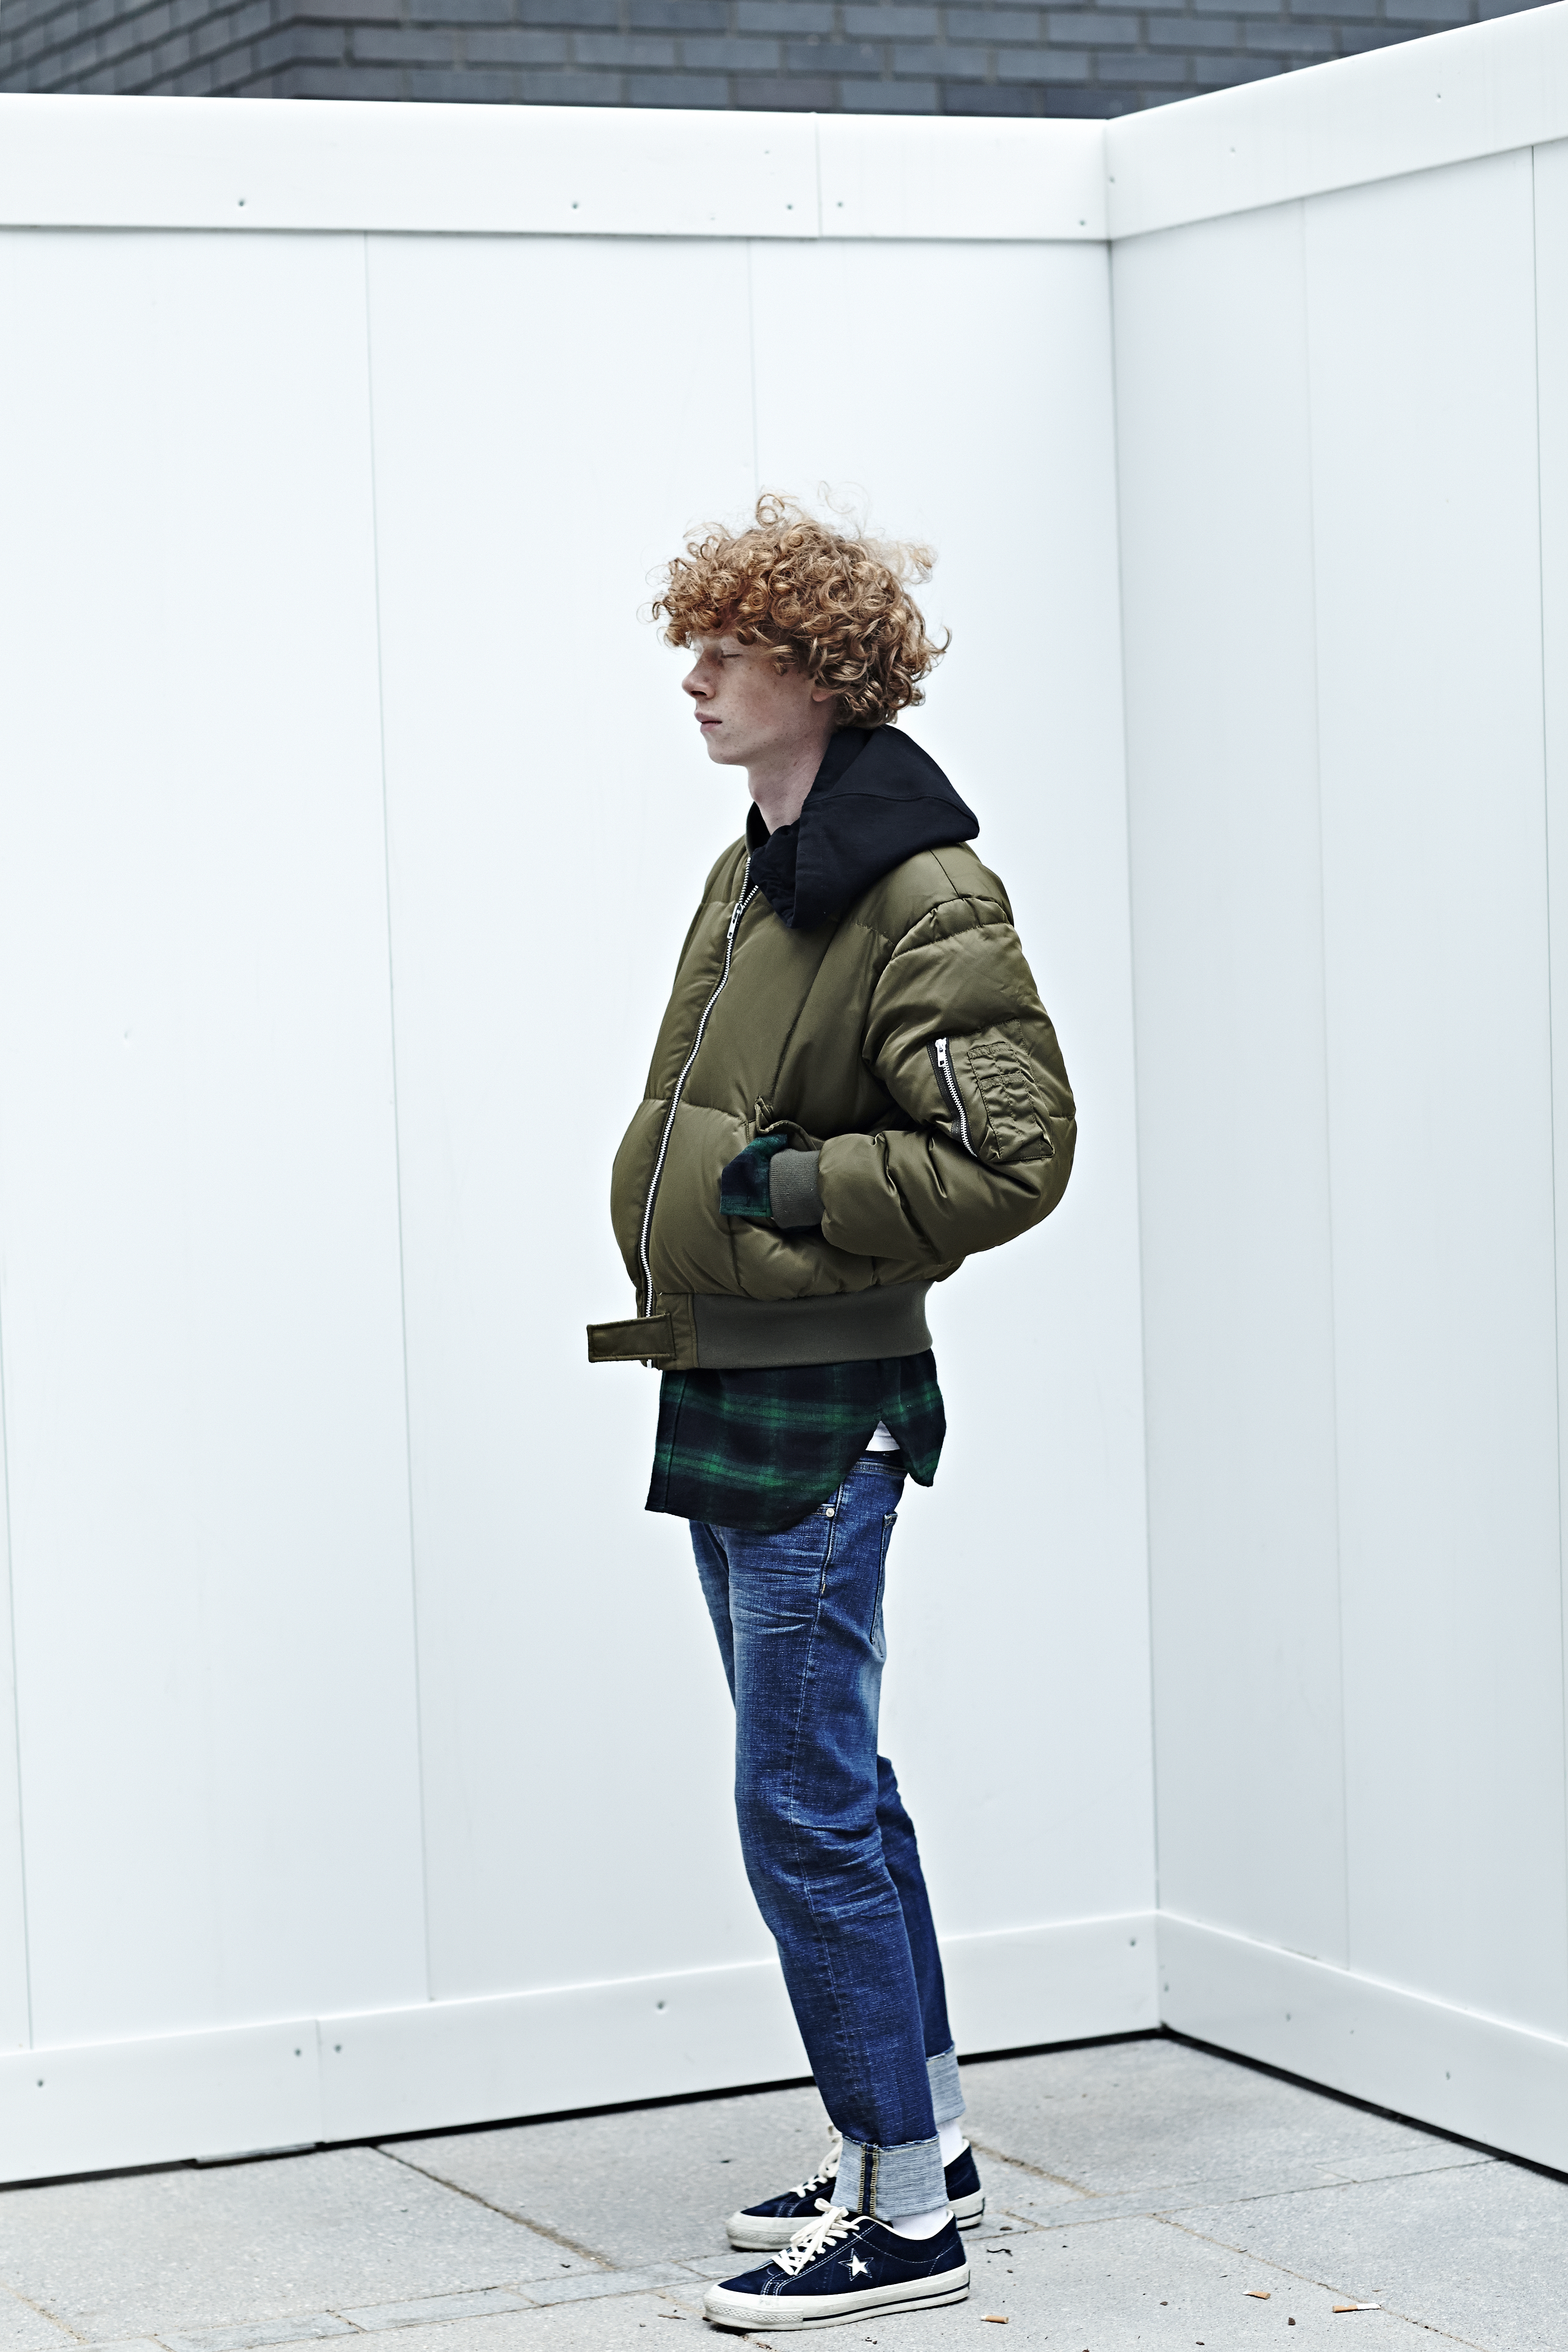 BEN REES for Upscale Lookbook W15